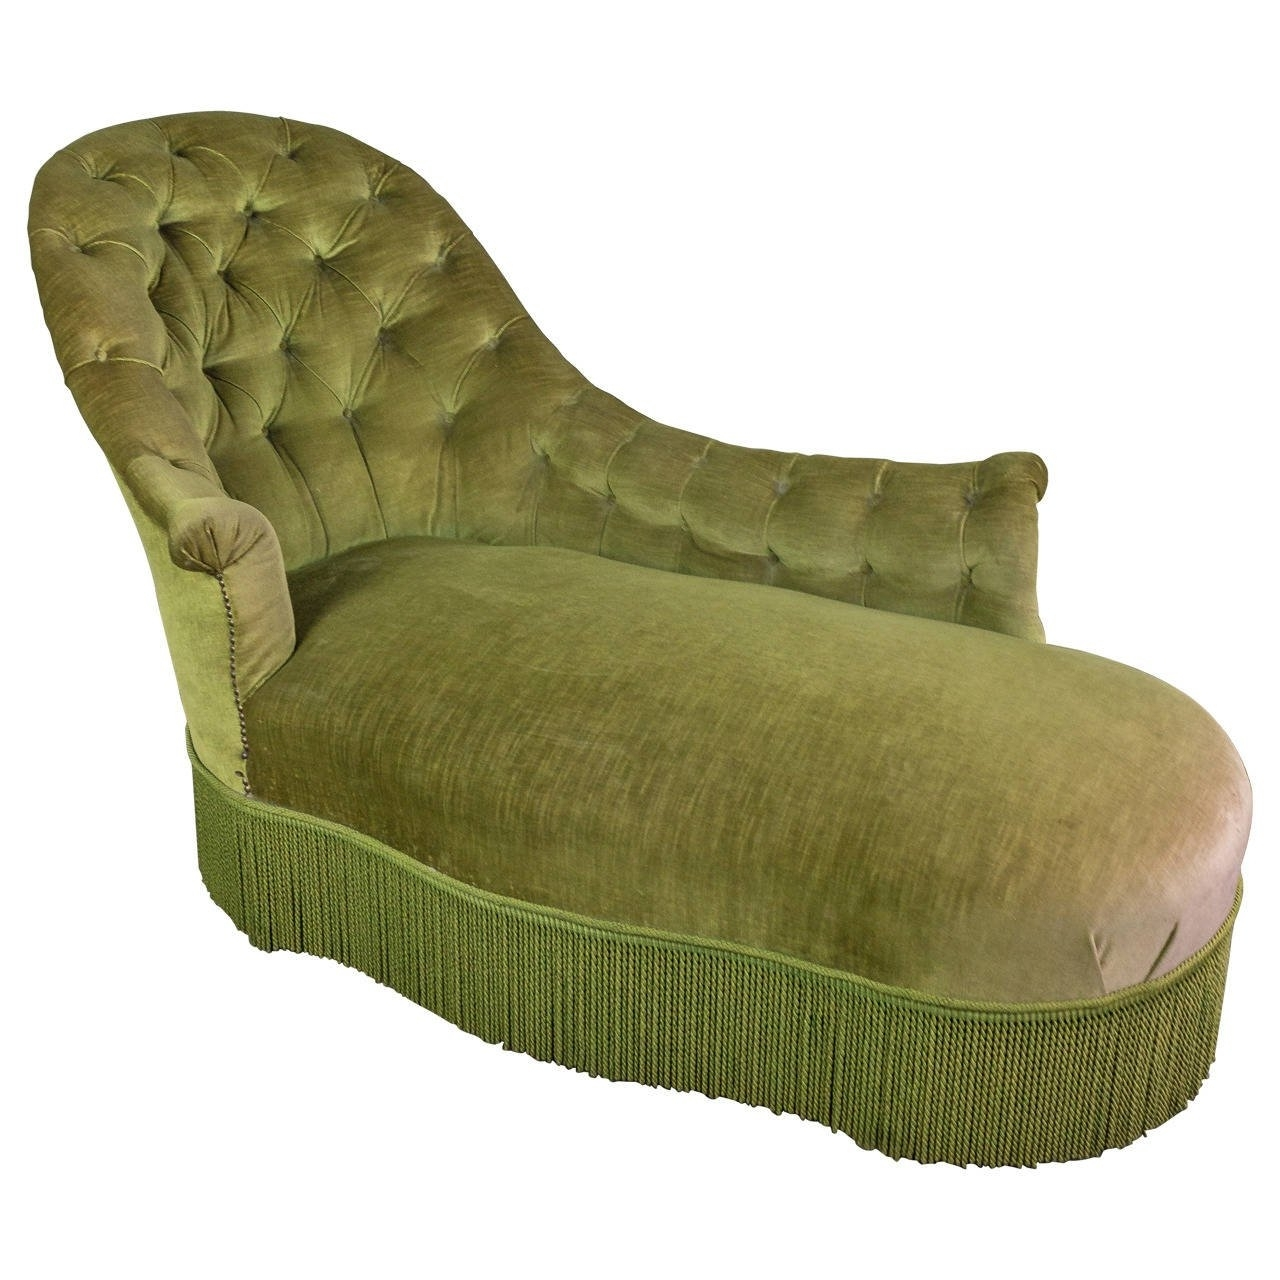 Green Chaises Within Well Known Tufted Asymmetrical Green Chaise Longue For Sale At 1Stdibs (View 9 of 15)